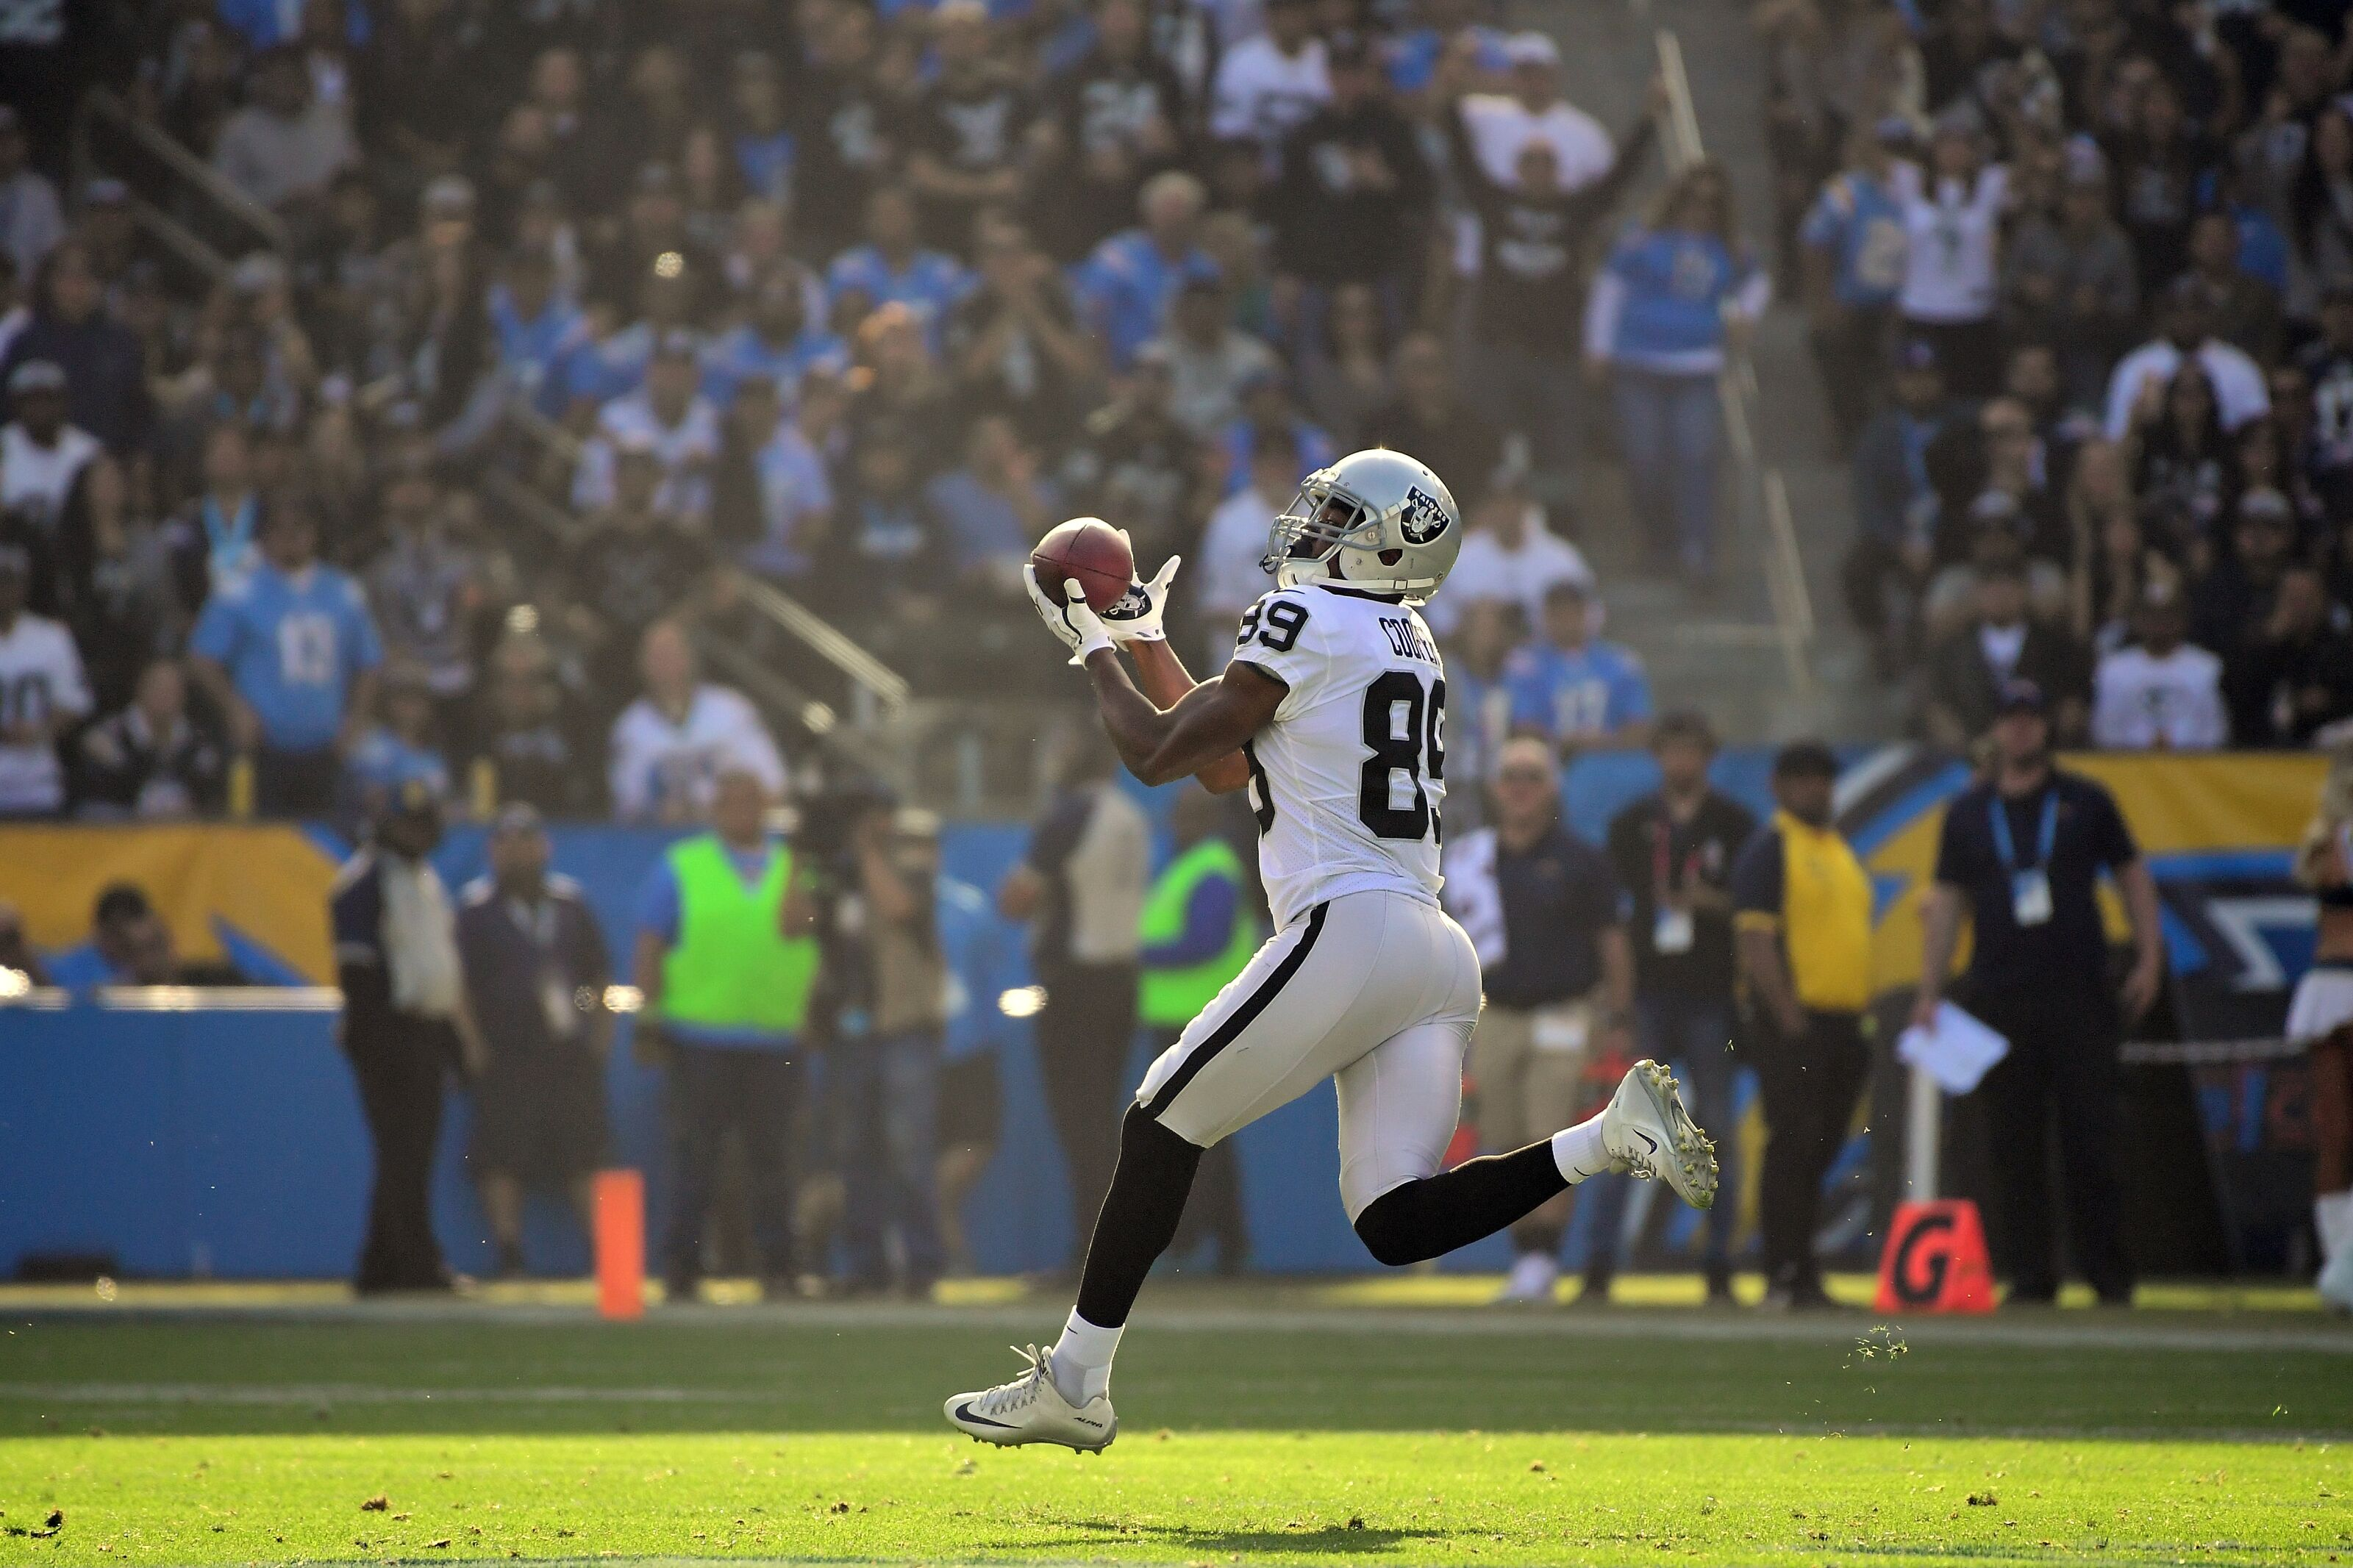 Oakland Raiders Projecting Amari Cooper and other fire sale moves